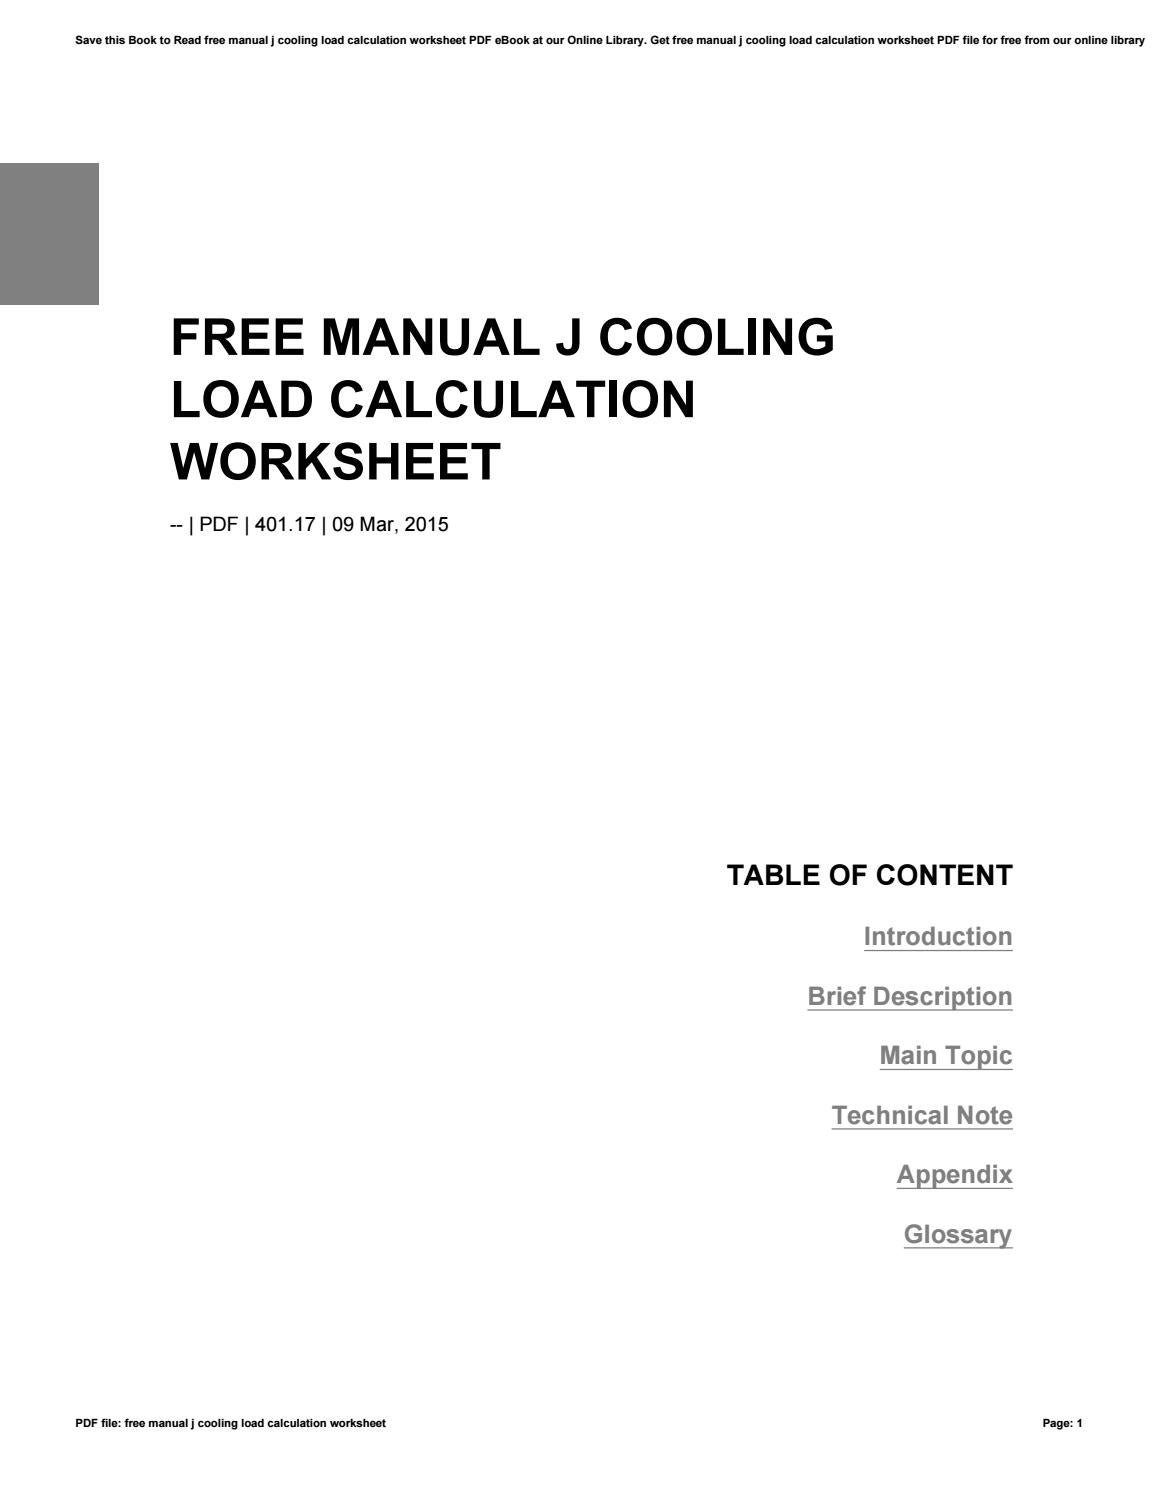 Worksheets Manual J Cooling Load Calculation Worksheet free manual j cooling load calculation worksheet by sisulo98eswete issuu